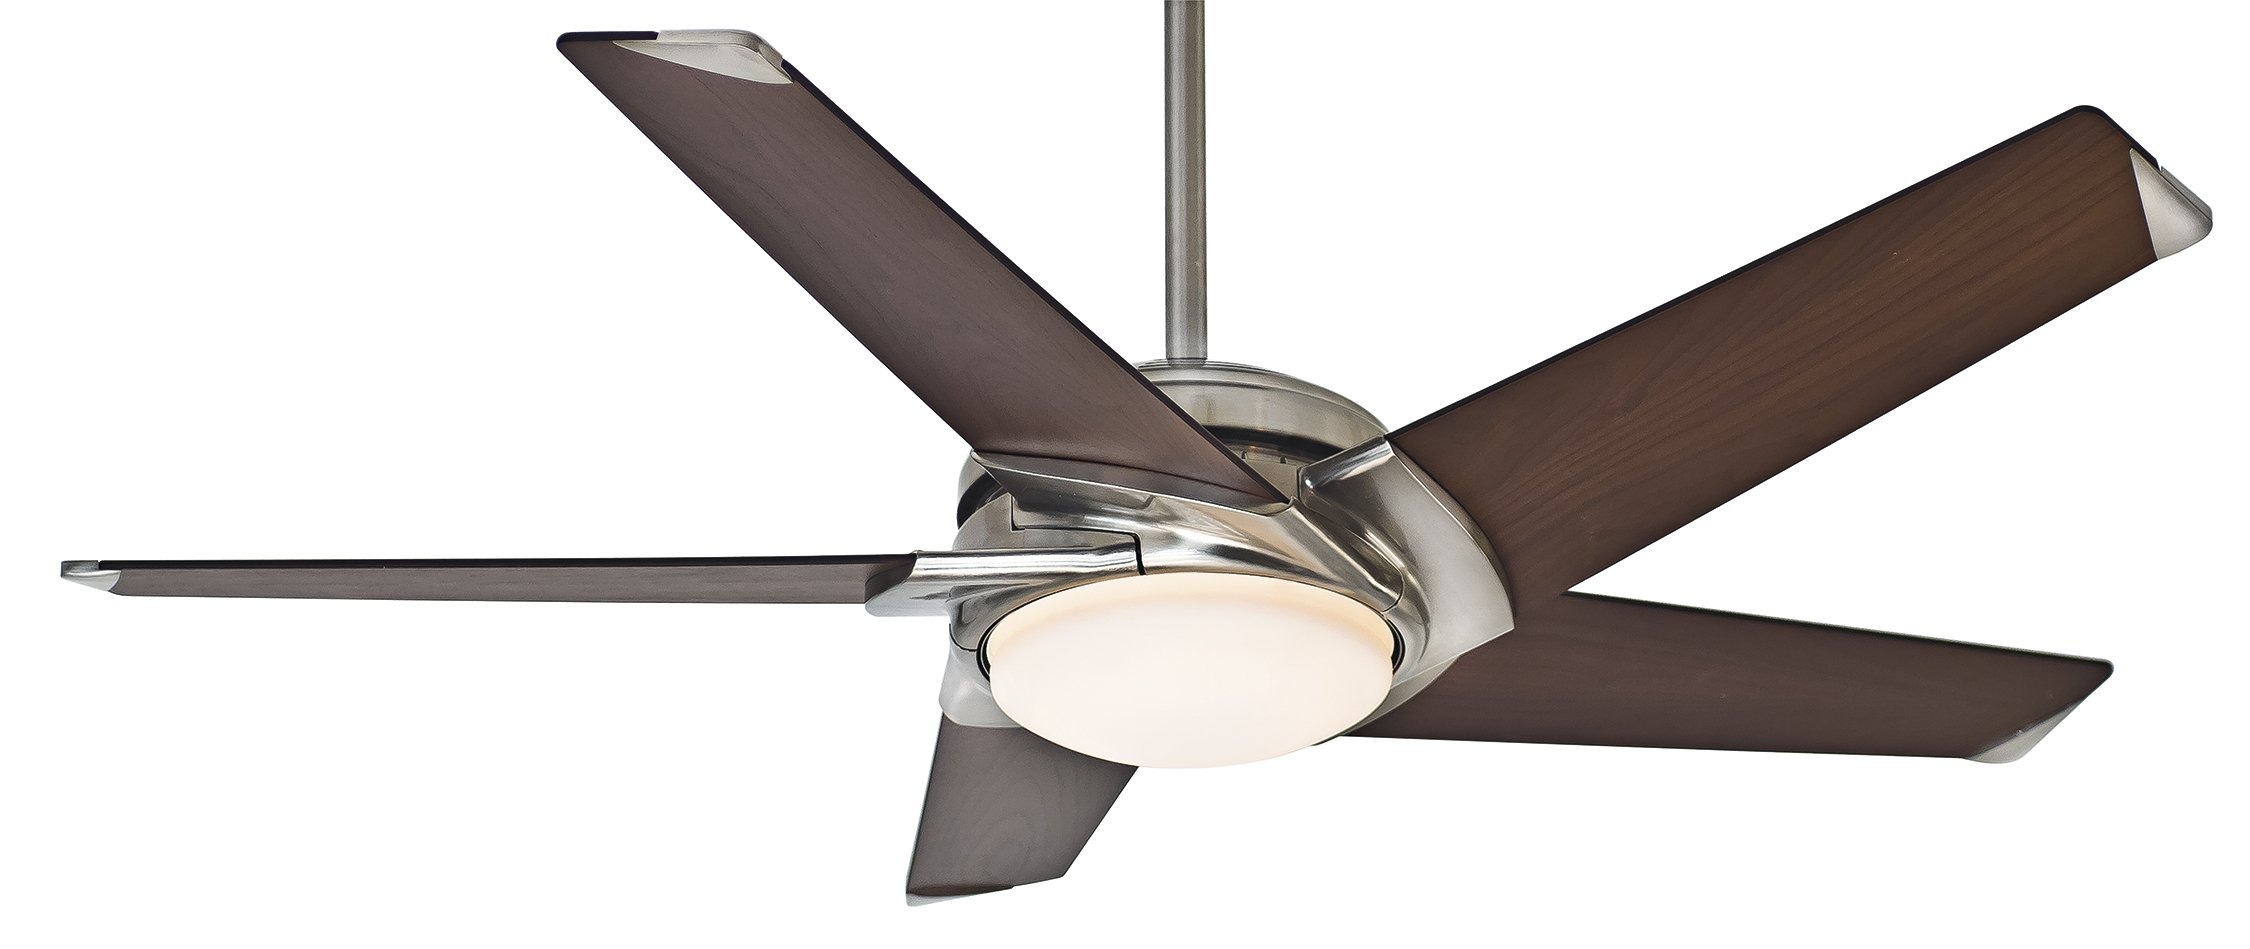 Casablanca Fan Company 59090 Stealth 54-inch Brushed Nickel Ceiling Fan with Dark Walnut Blades and Cased White Glass Light by Casablanca